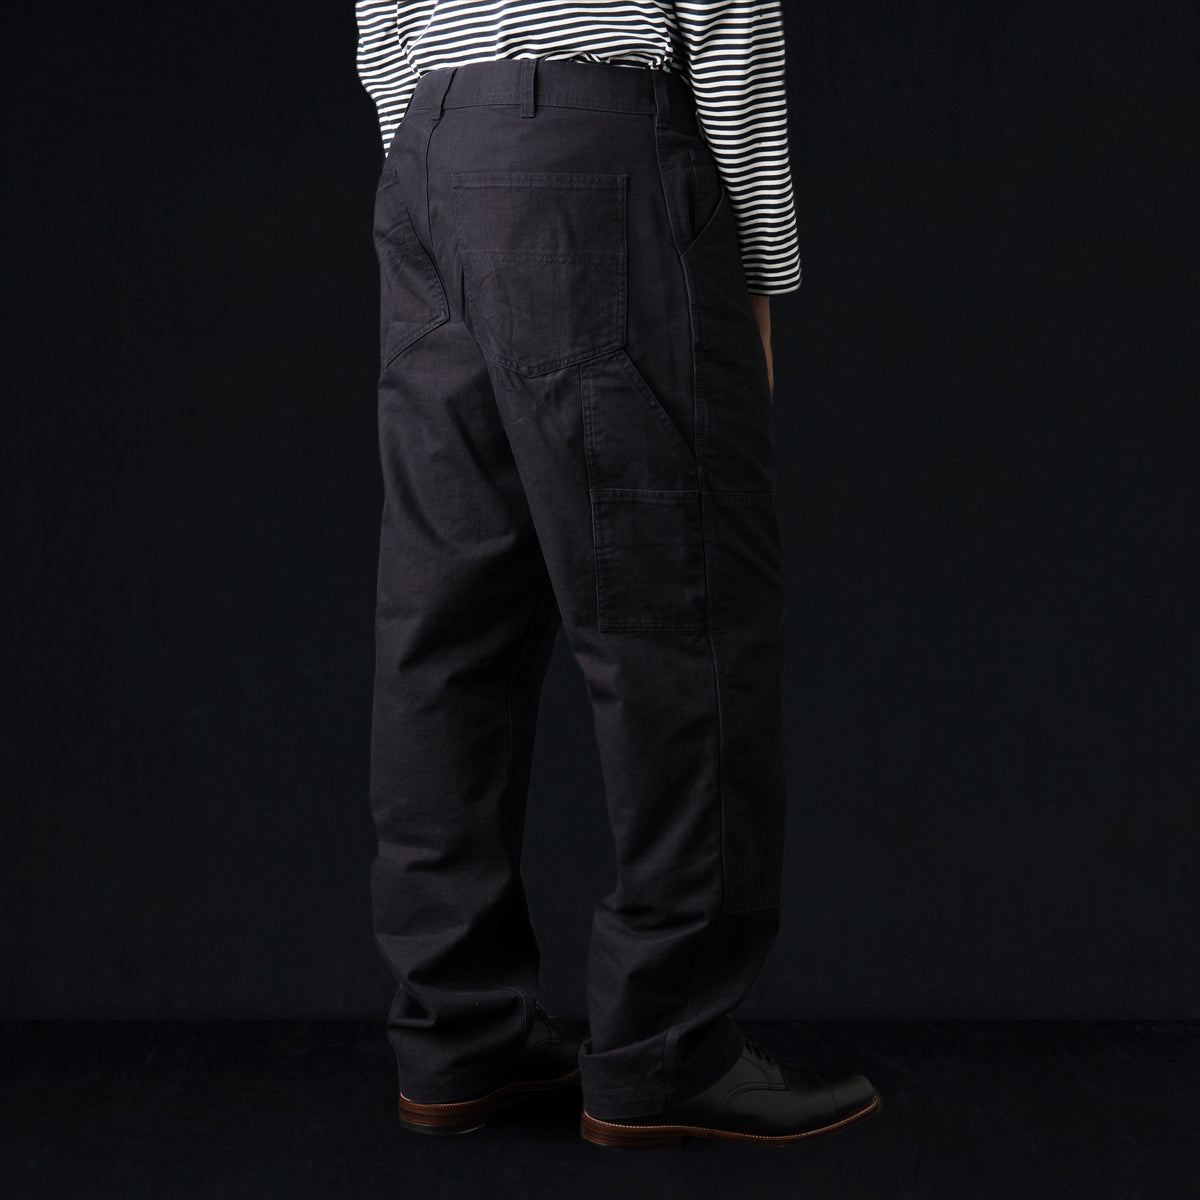 fef55cc10d6 MHL / Margaret Howell - Twill Painters Trouser in Indigo - UNIONMADE